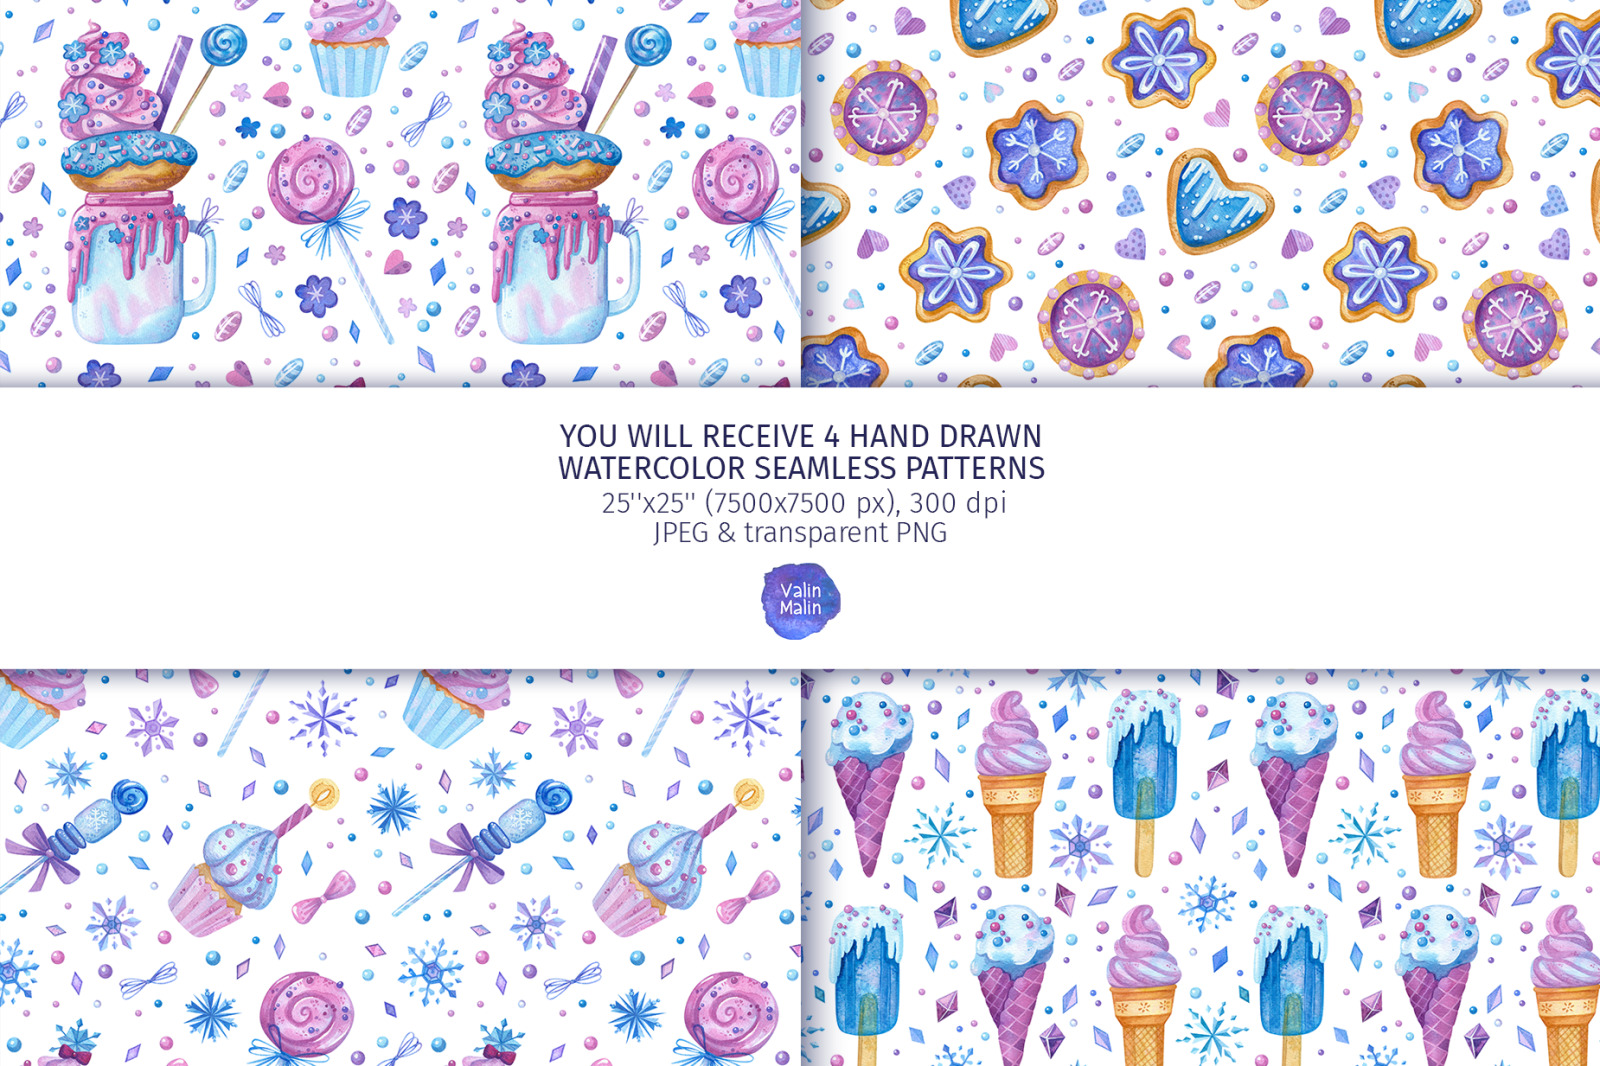 Baking clipart. Seamless patterns for birthday candy bar decoration, for planner stickers.